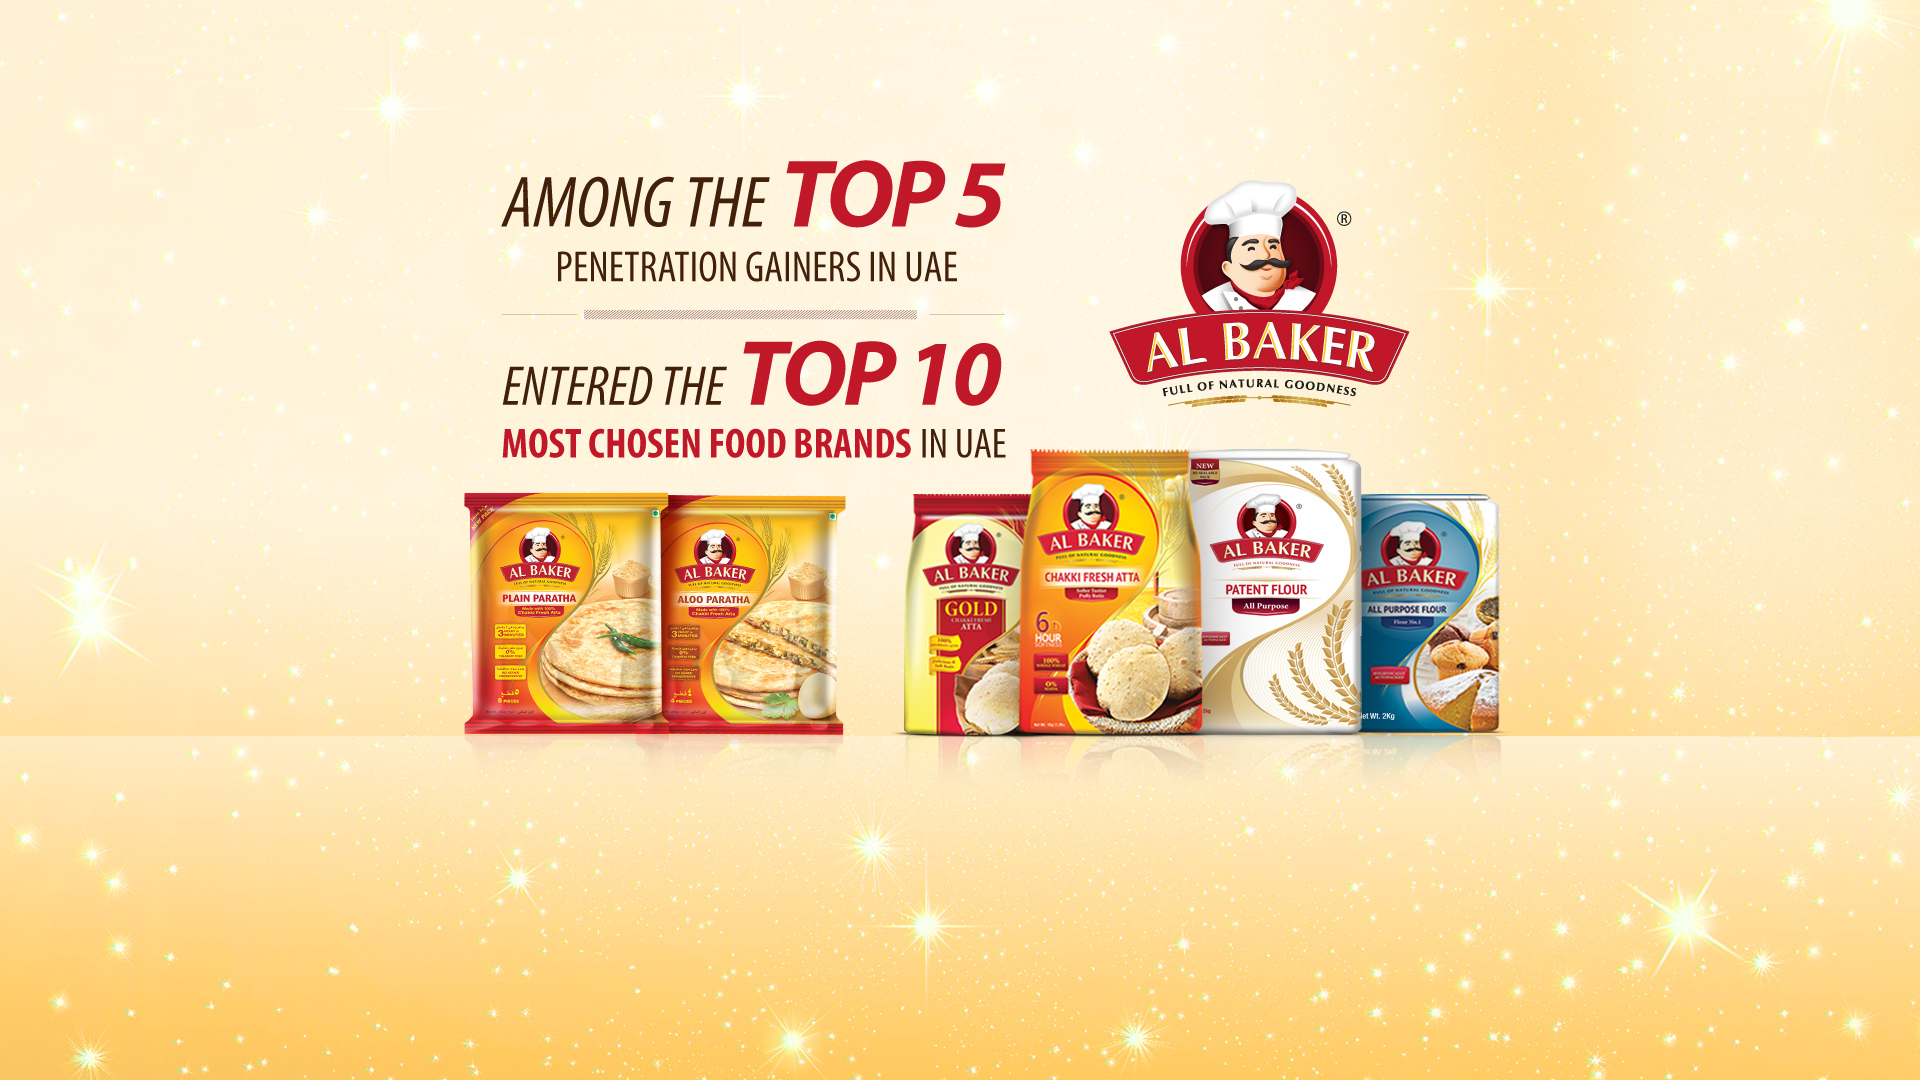 AlBaker is one of the most chosen food brands in the UAE